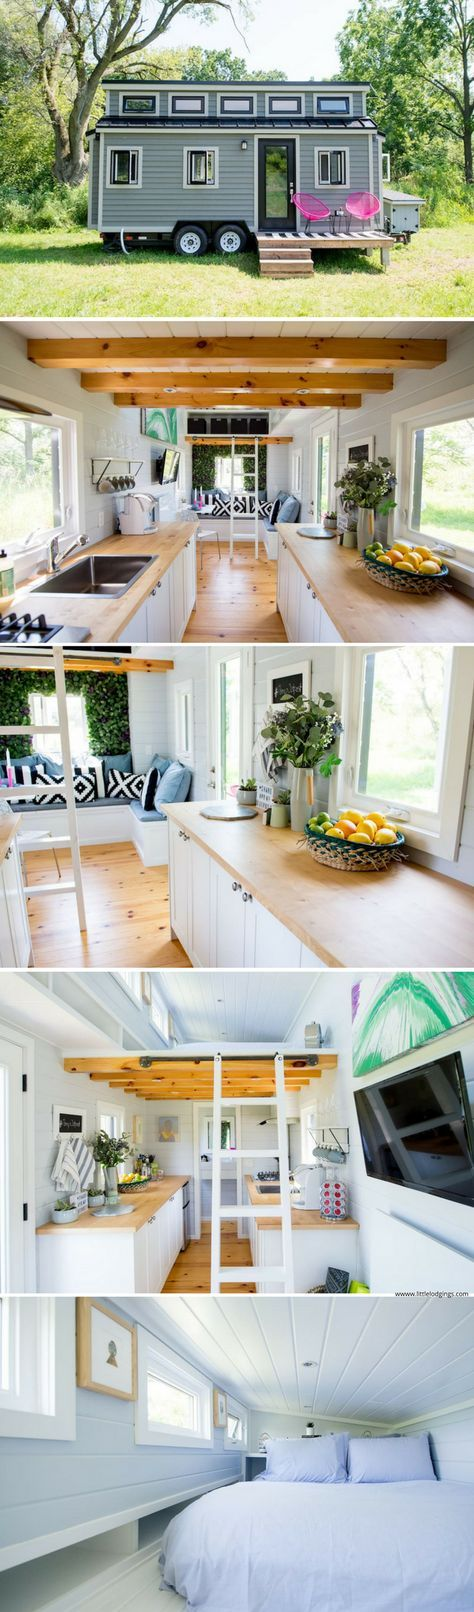 The Pomp Outpost: a tiny house in Prince Edward County, Ontario. Perfect for couples!